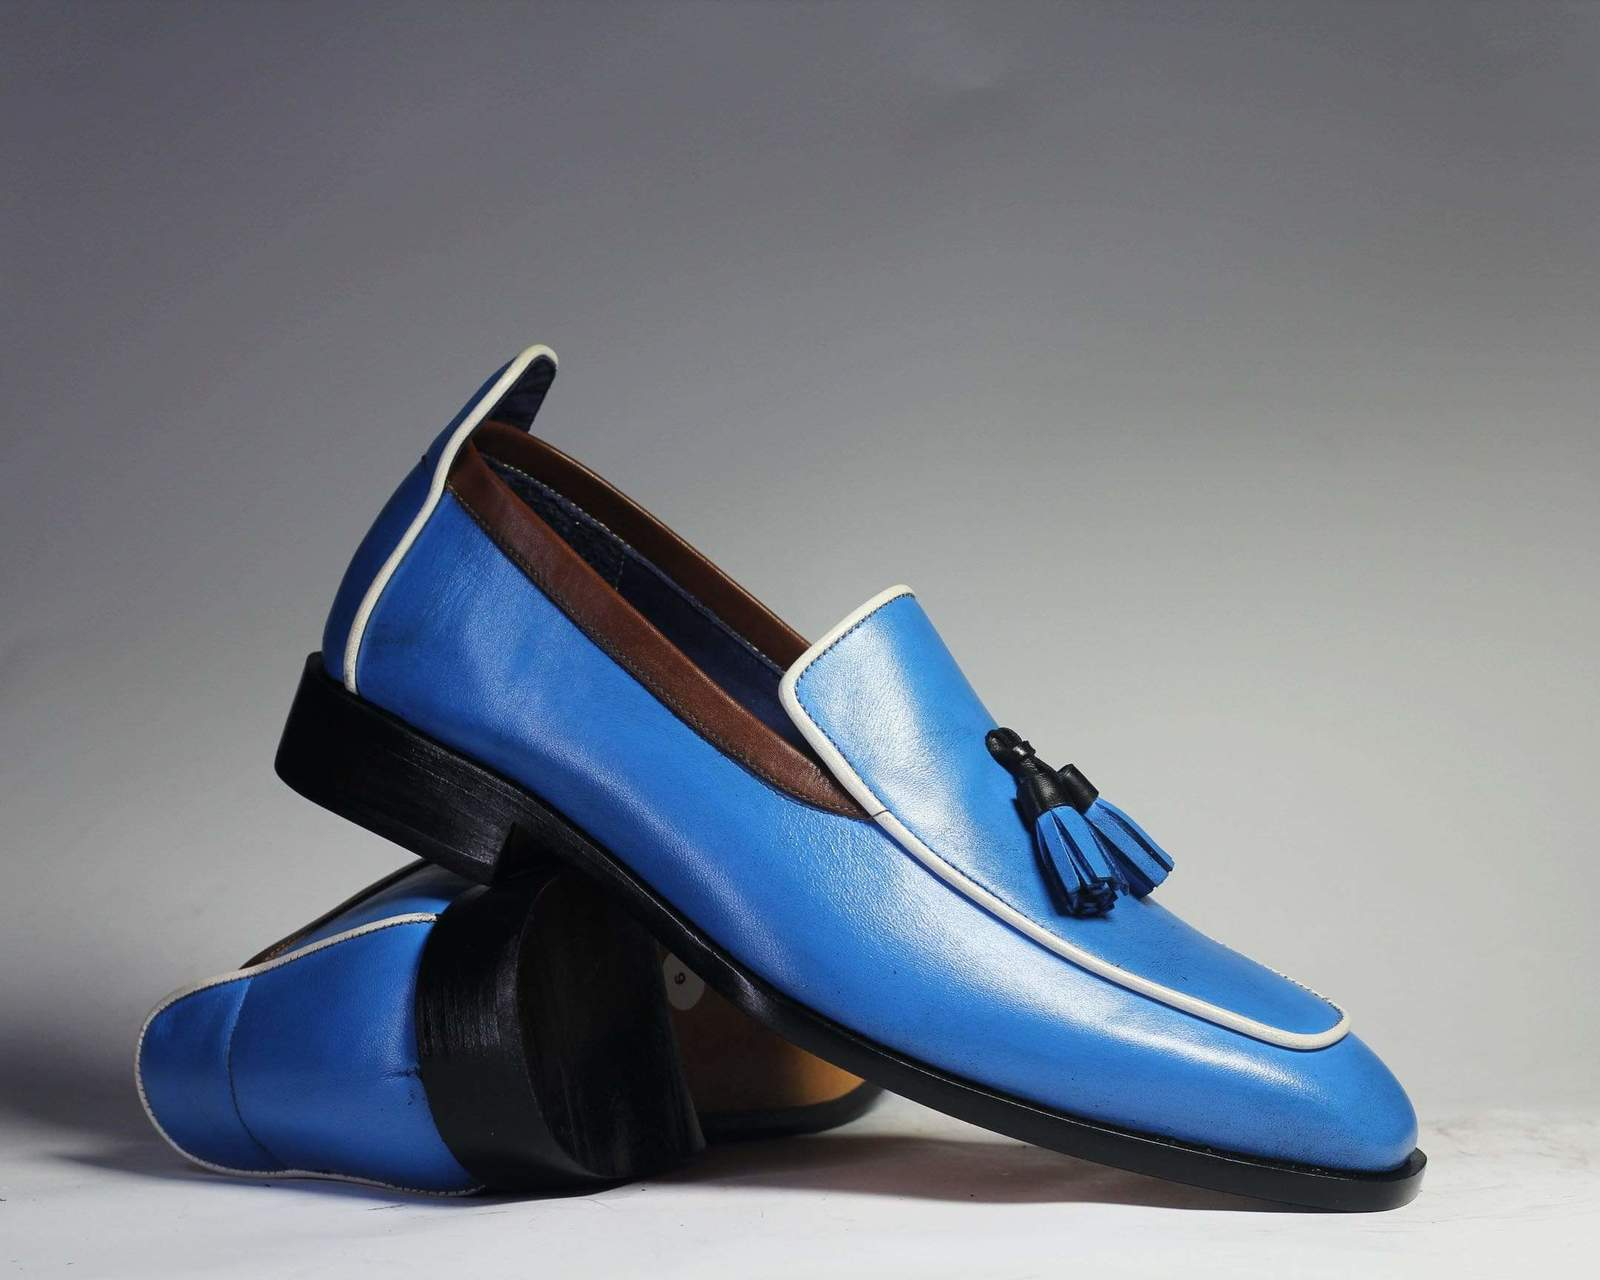 Primary image for Bespoke Blue Tussle Leather Loafers for Men's